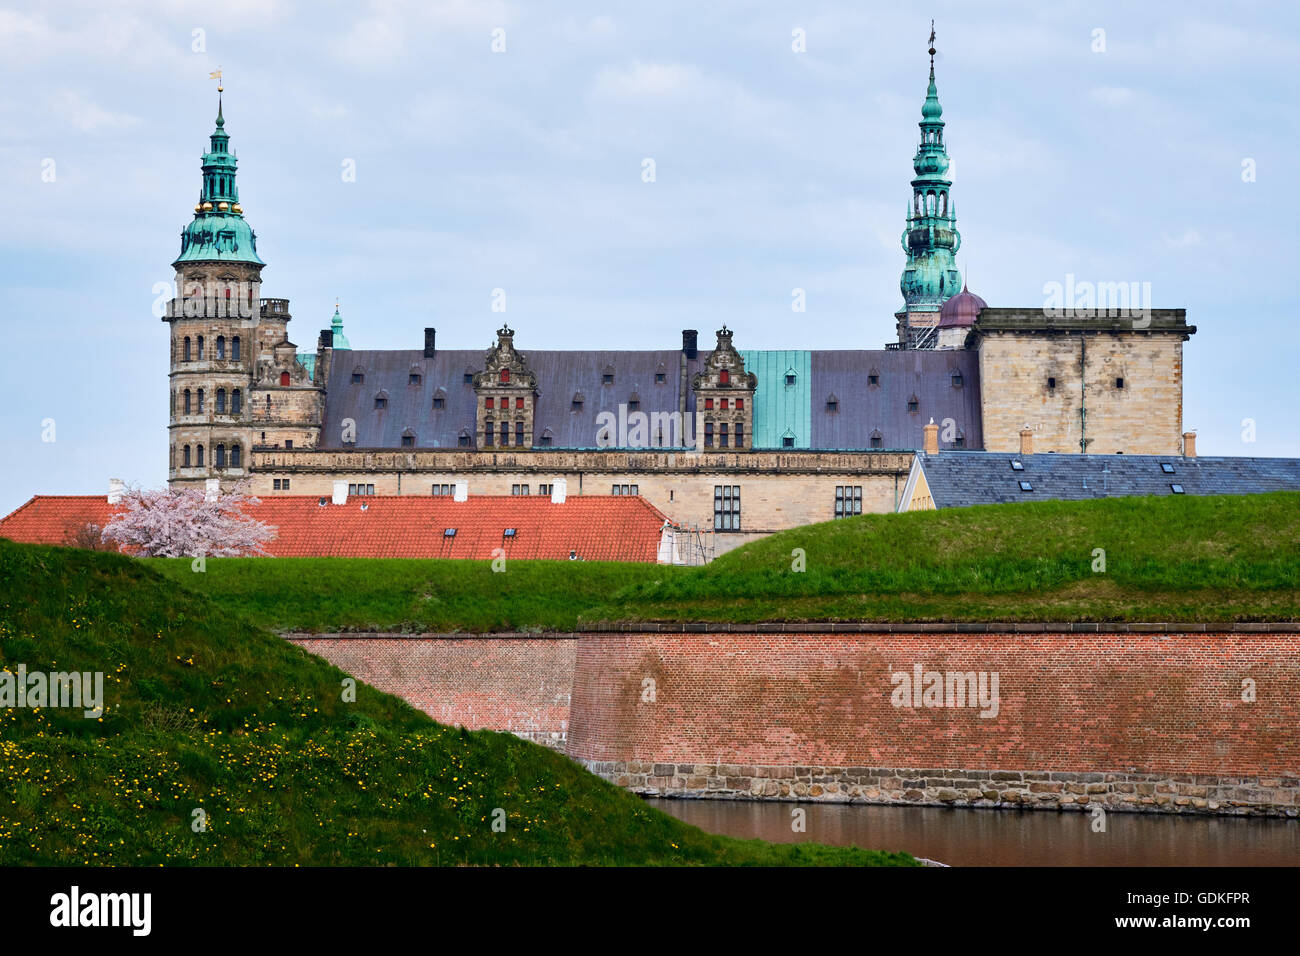 Elsinore castle in Denmark seen from the other side of the moat with vertical red brick walls - Stock Image